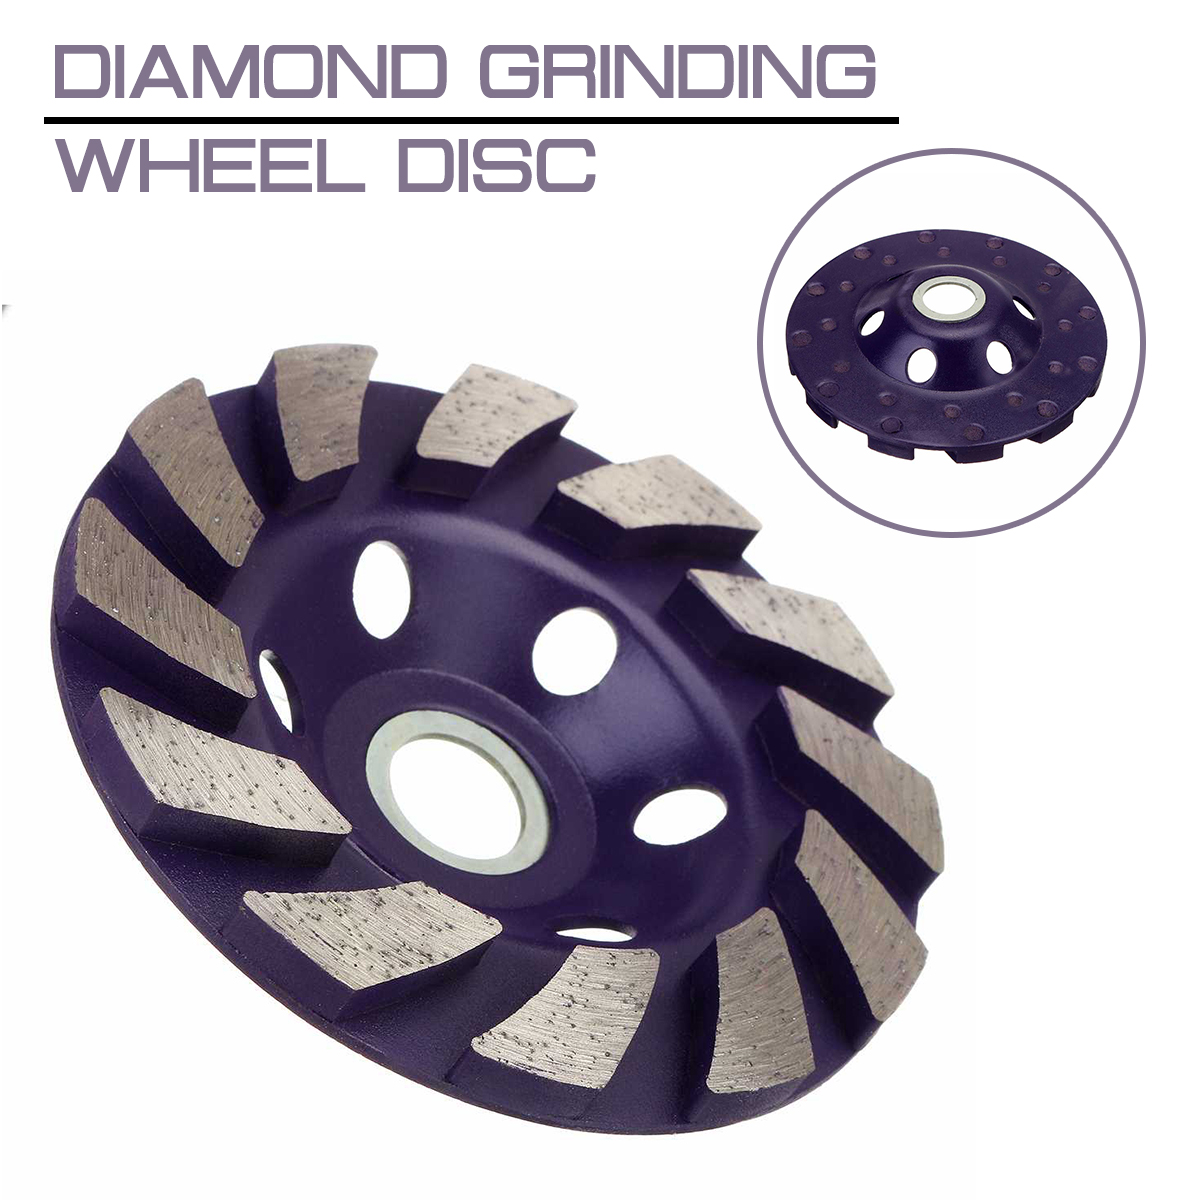 "4"" 100mm 1pcs Diamond Grinding Wheel Disc Bowl Shape Grinding Cup Concrete Granite Stone Ceramic Cutting Disc Piece Power Tools"